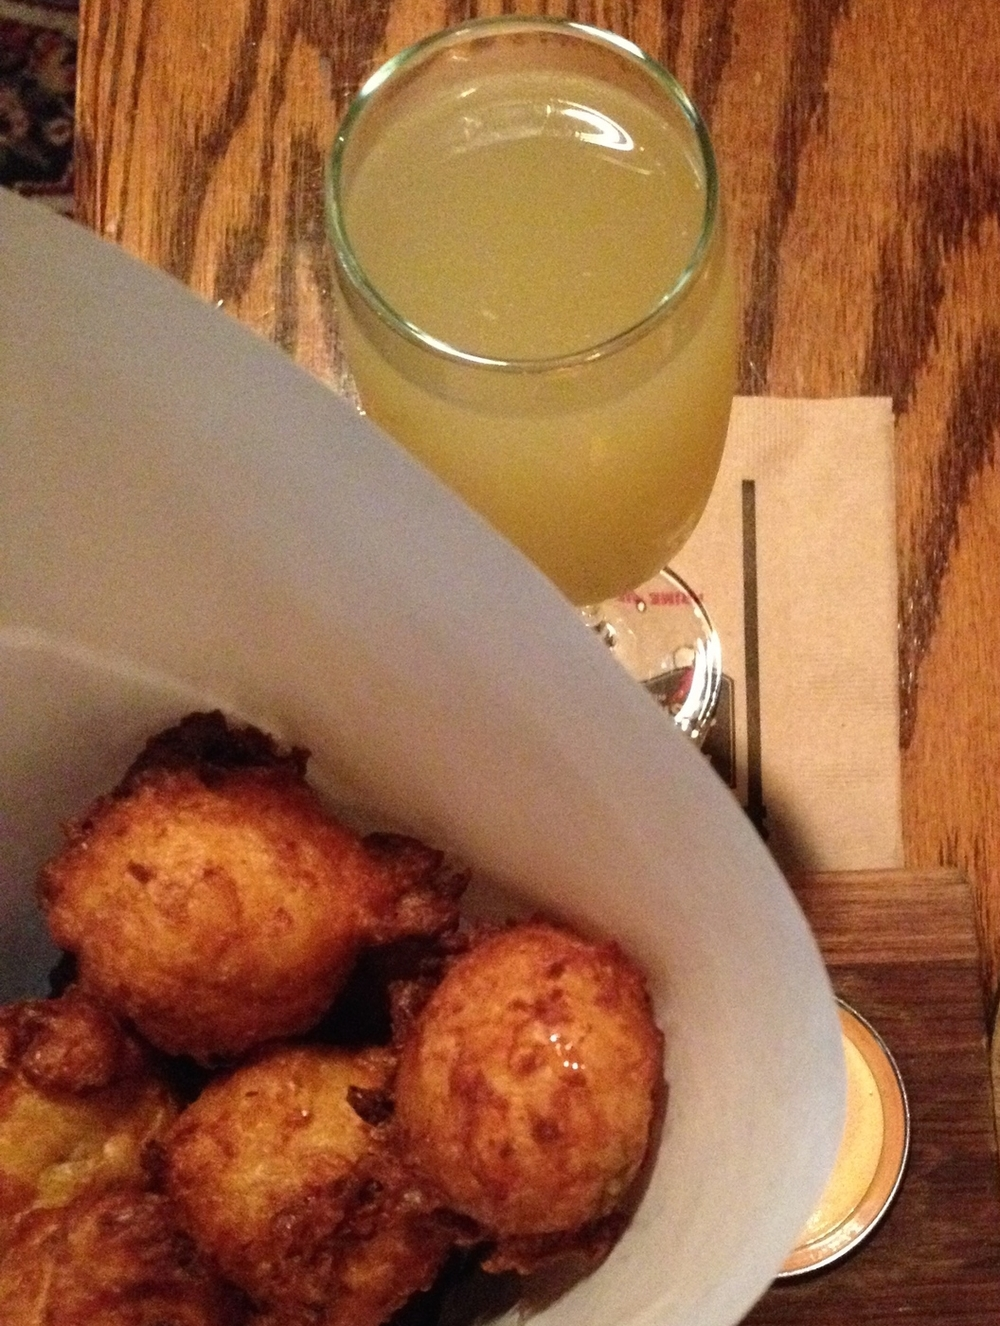 SWEET CORN FRITTERS withfresno chili aioli and a SCOTCH LASSIE with famous grouse, apricot and ginger liquor topped with prosecco